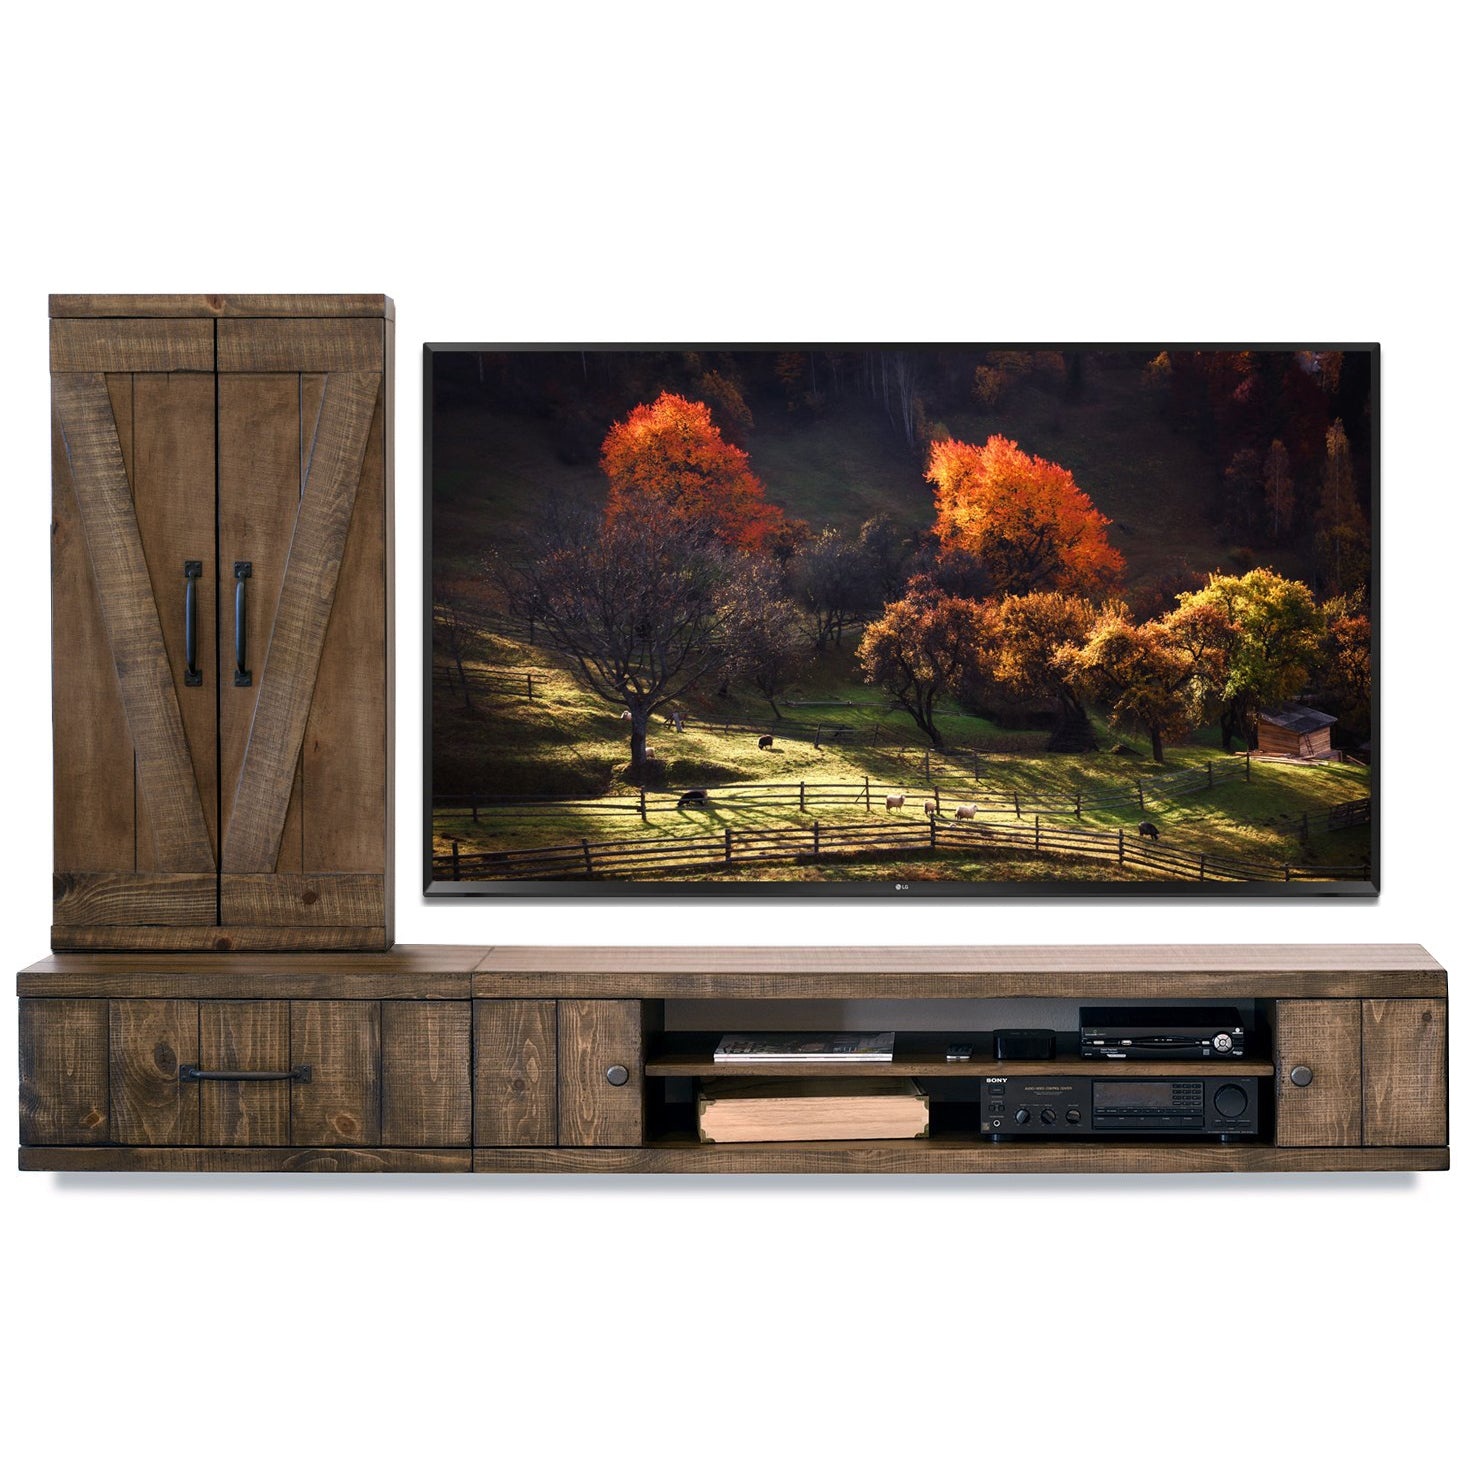 Wall Mount Entertainment Center Rustic Floating TV Stand With Bookcase - Farmhouse - Spice